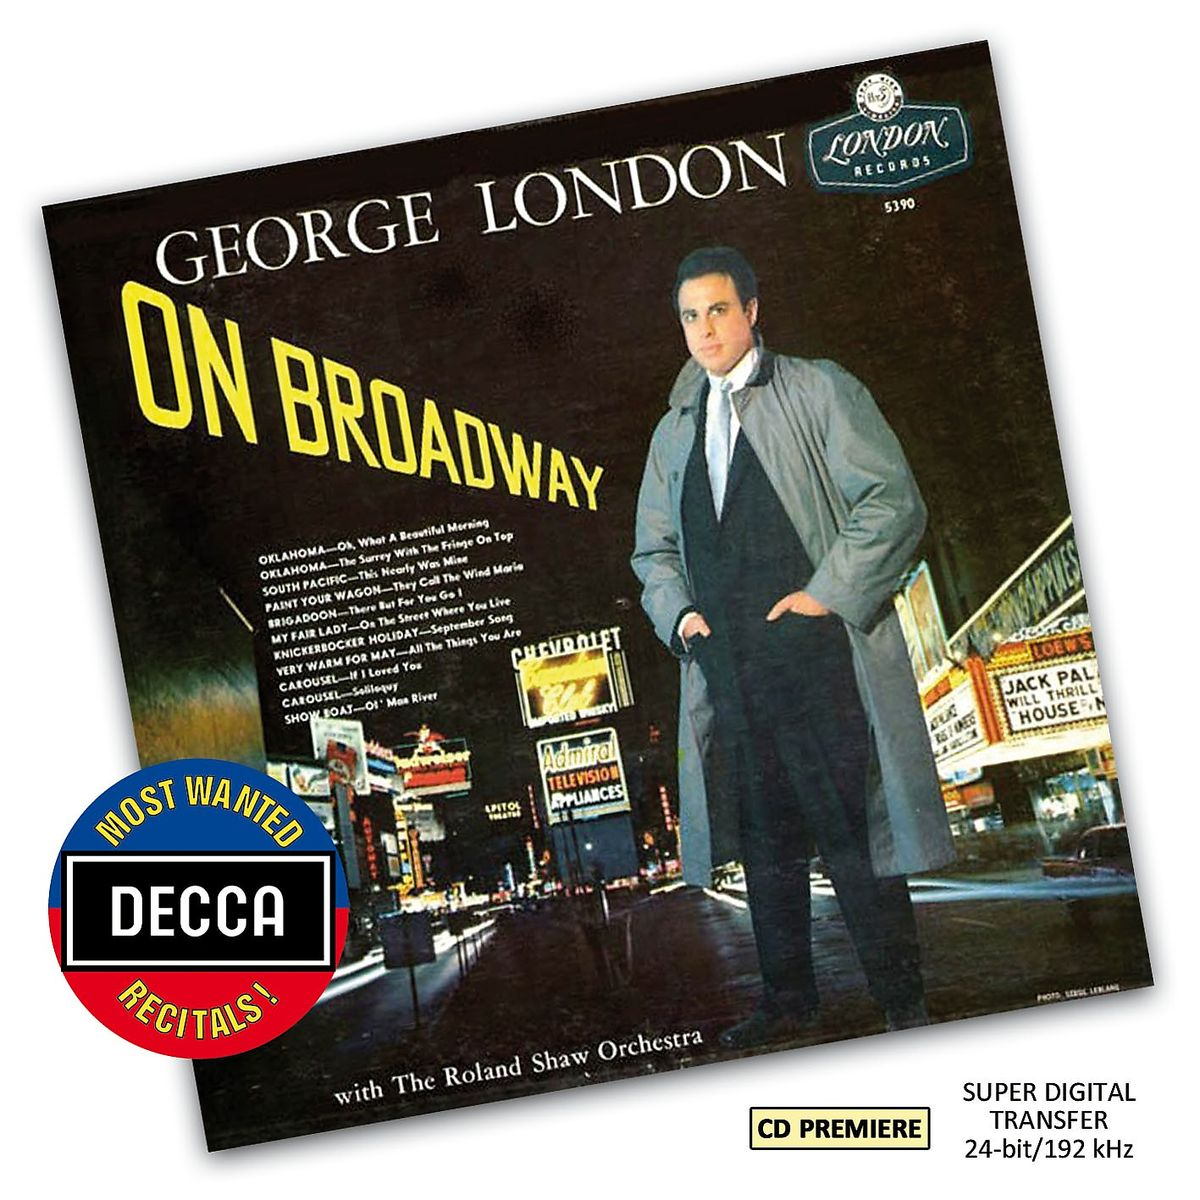 """George London's """"On Broadway"""" album in Decca's """"Most Wanted"""" series."""